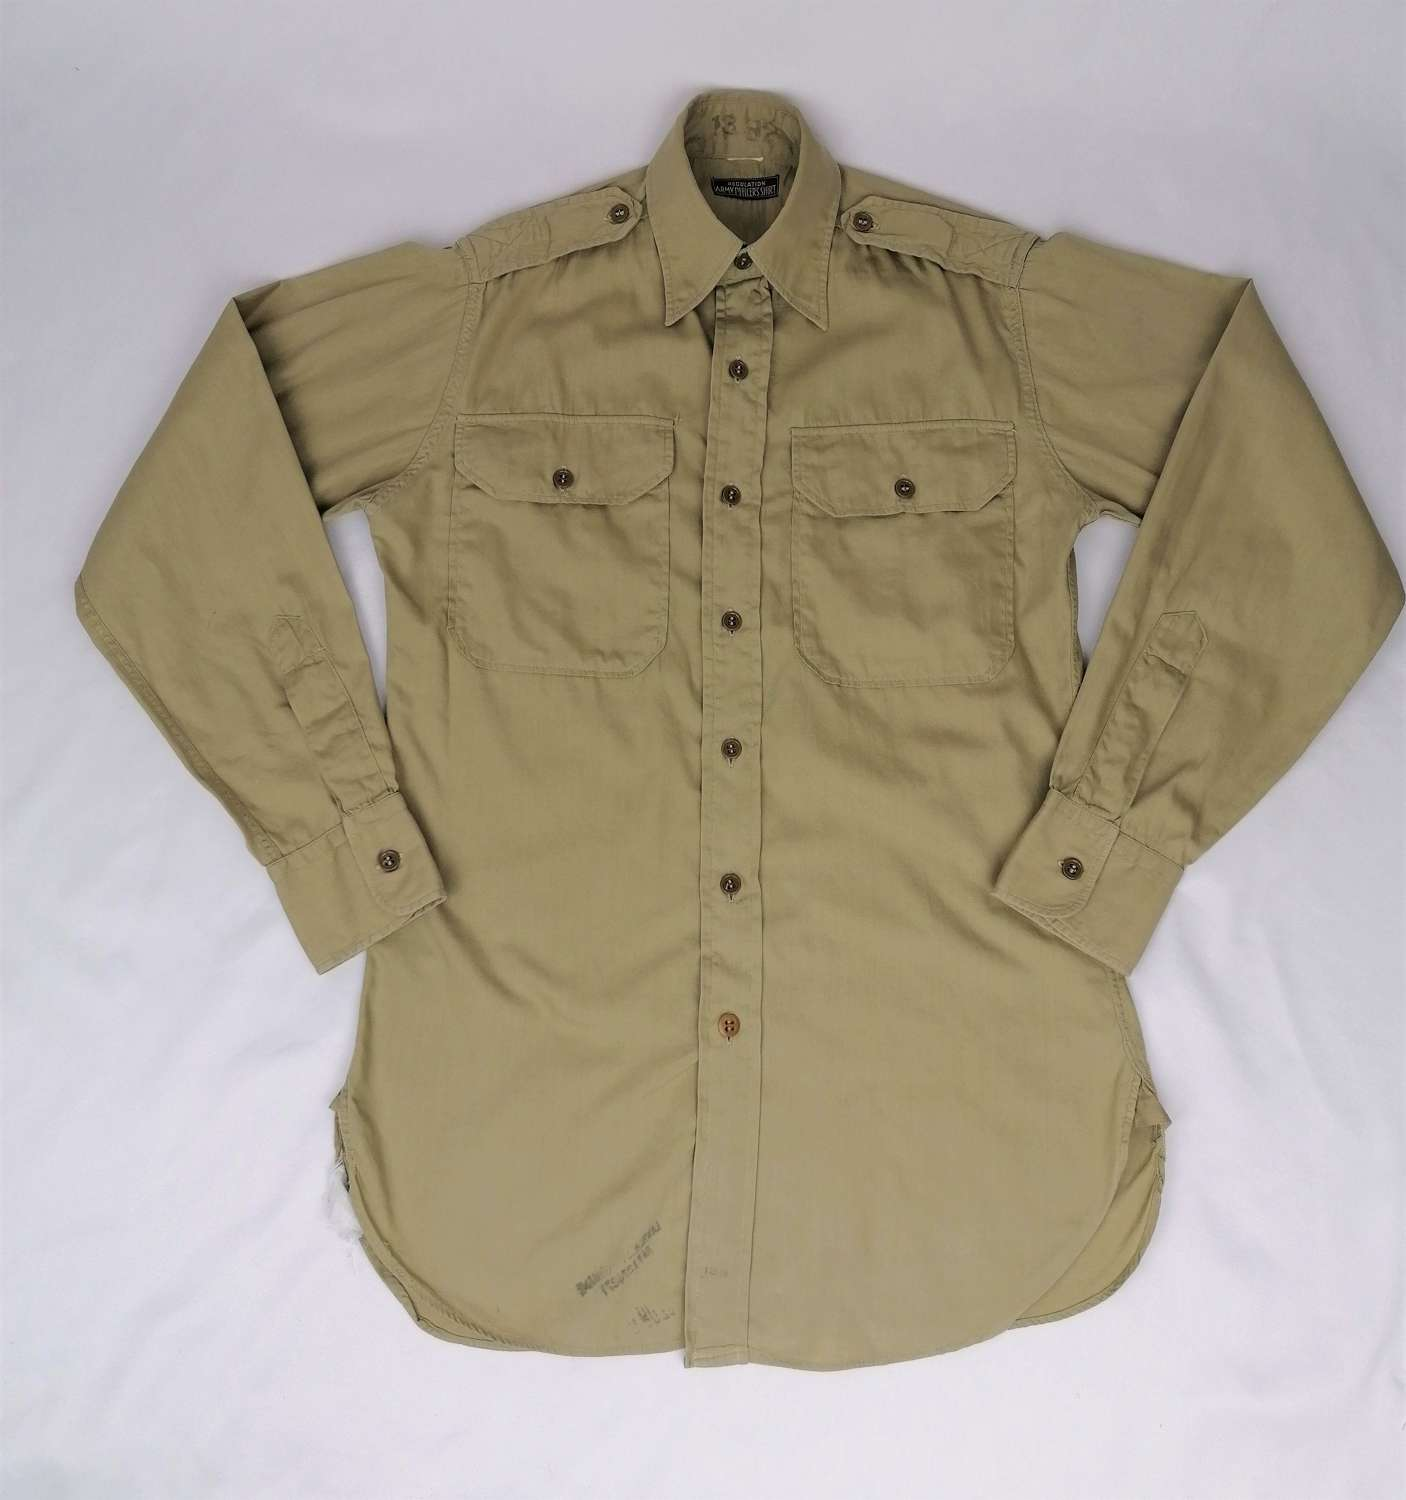 US Army Officers Tan Khaki Regulation Shirt